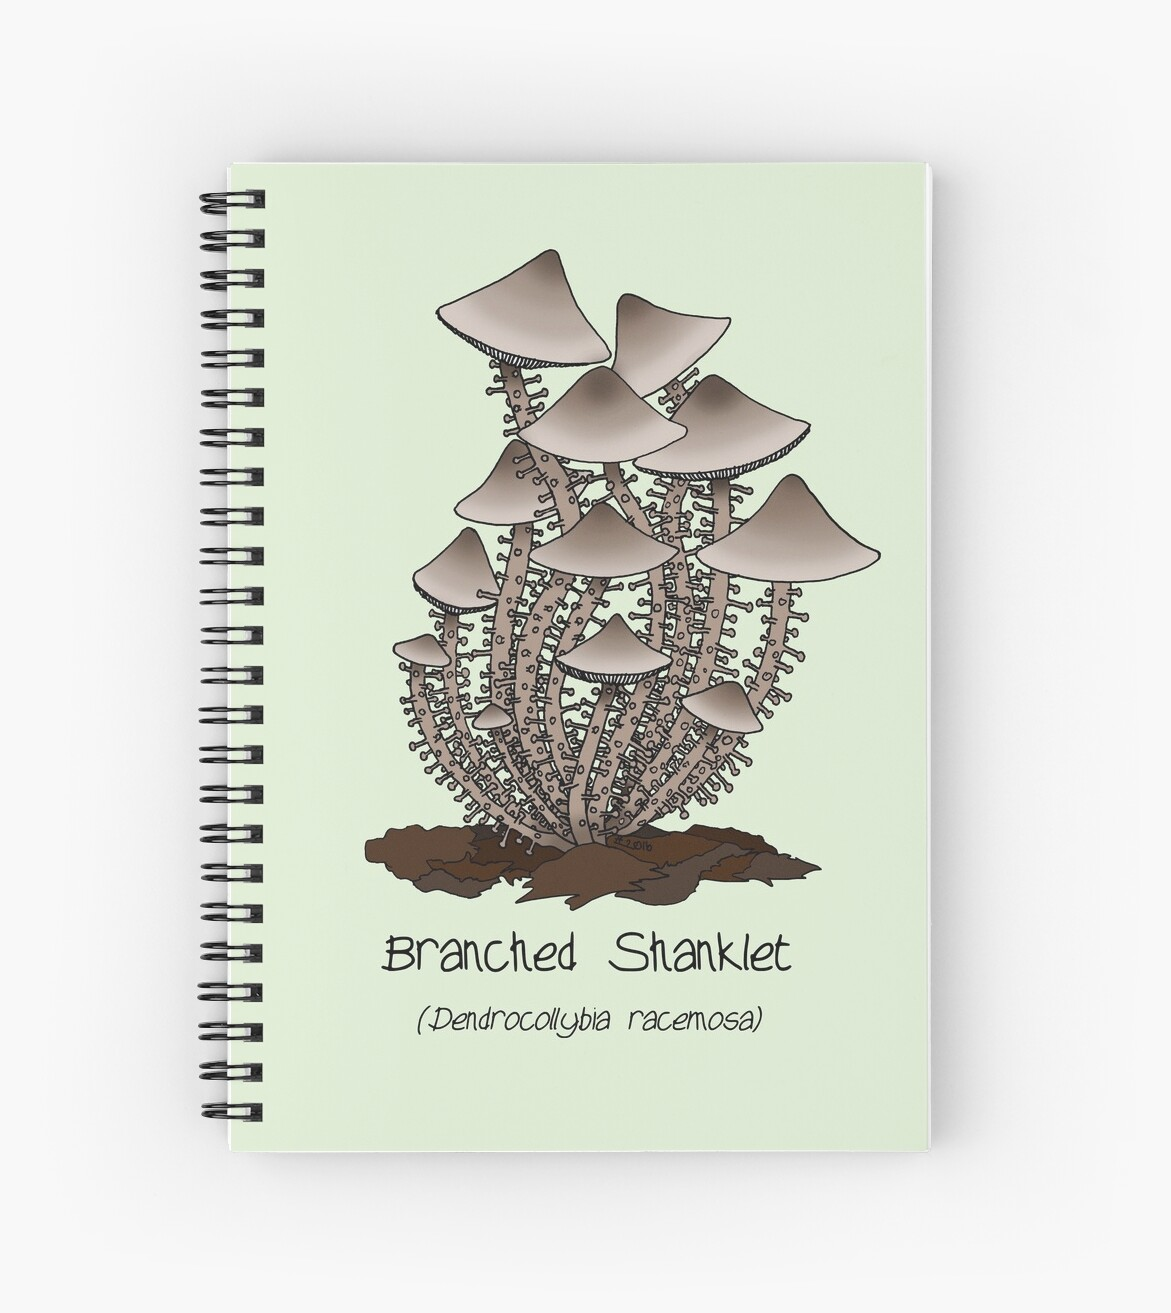 Branched Shanklet by Cartoon Neuron